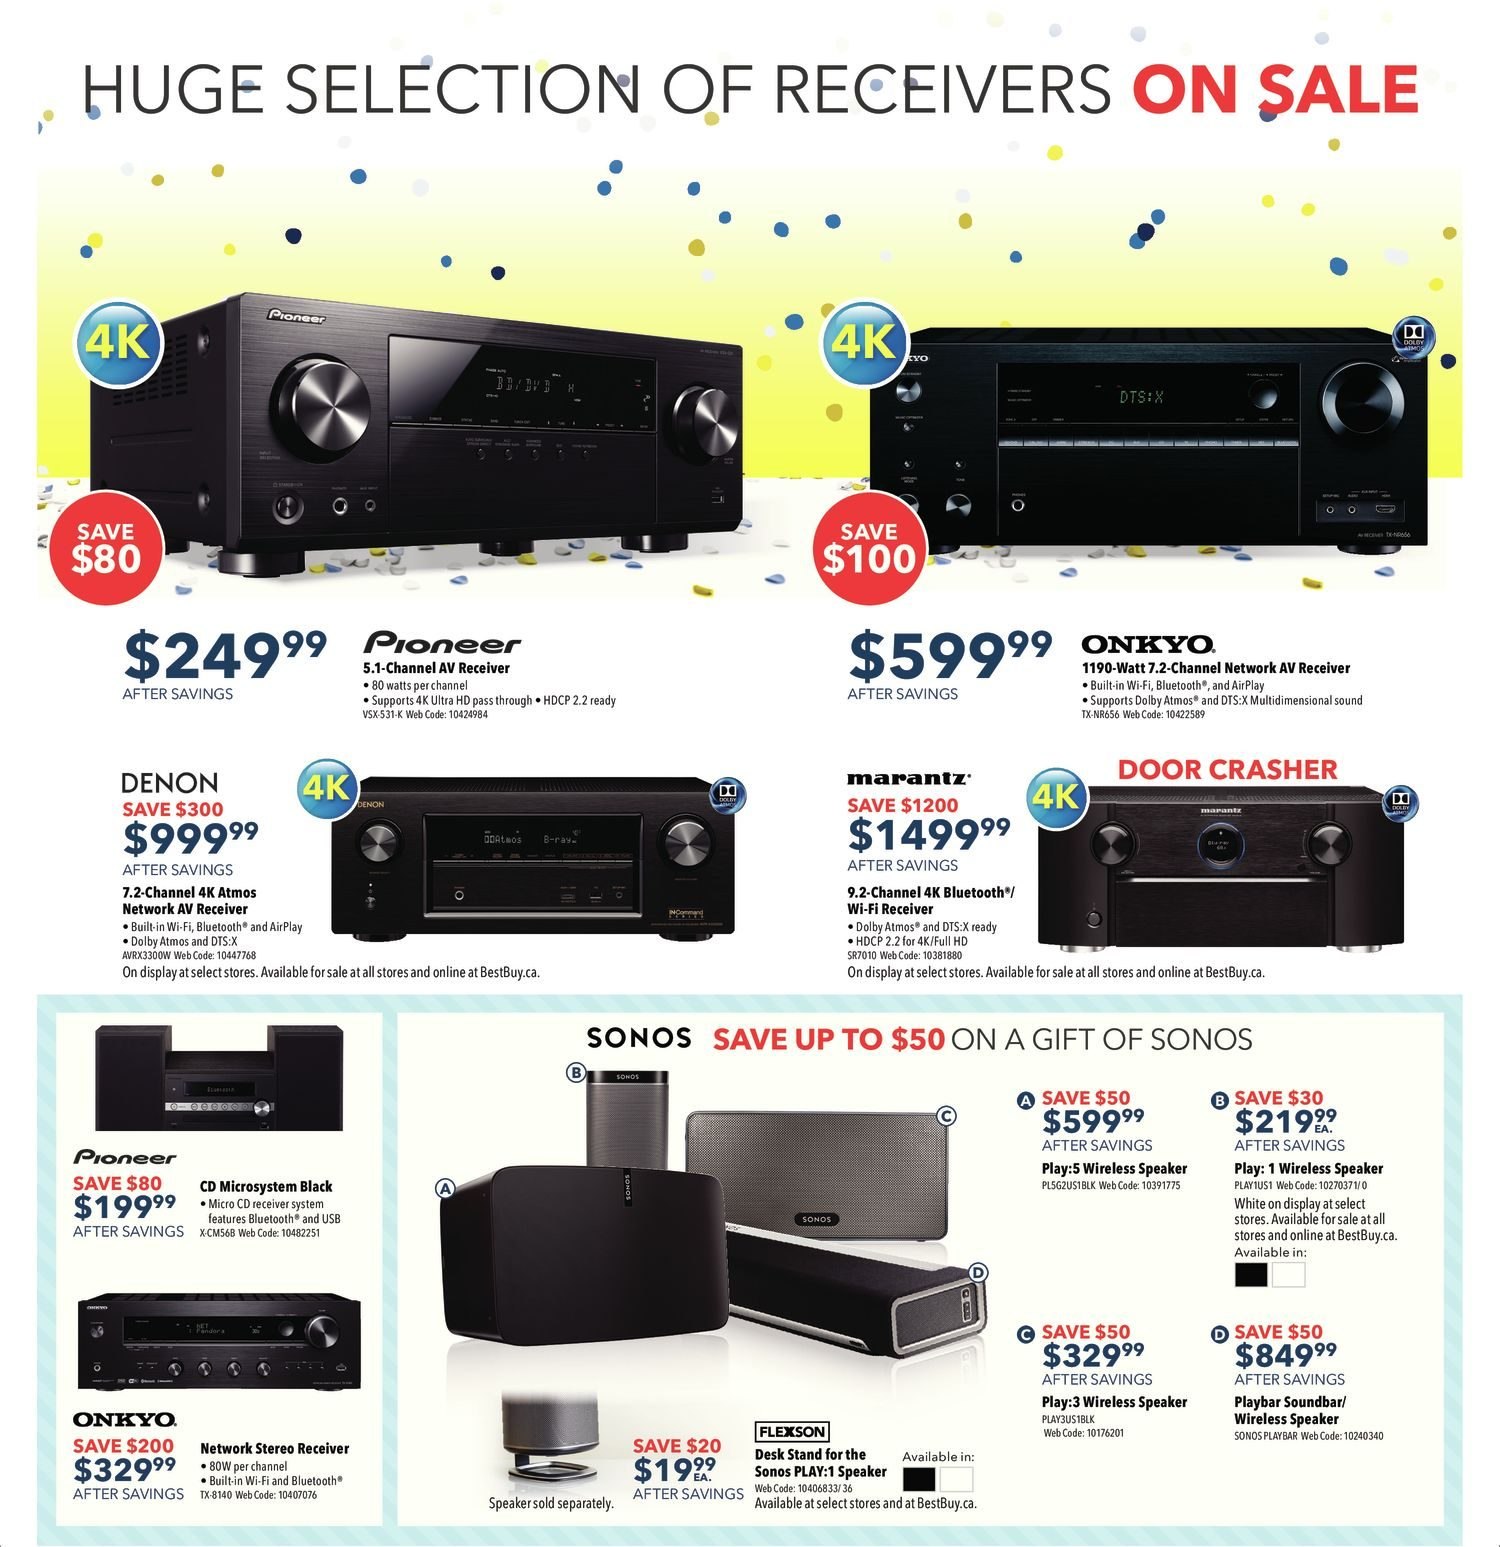 Best Buy Weekly Flyer Boxing Day Sale Dec 25 29 Streamer With 3x Airplay Ce Pro On Installing Outdoor Wiring Speakers